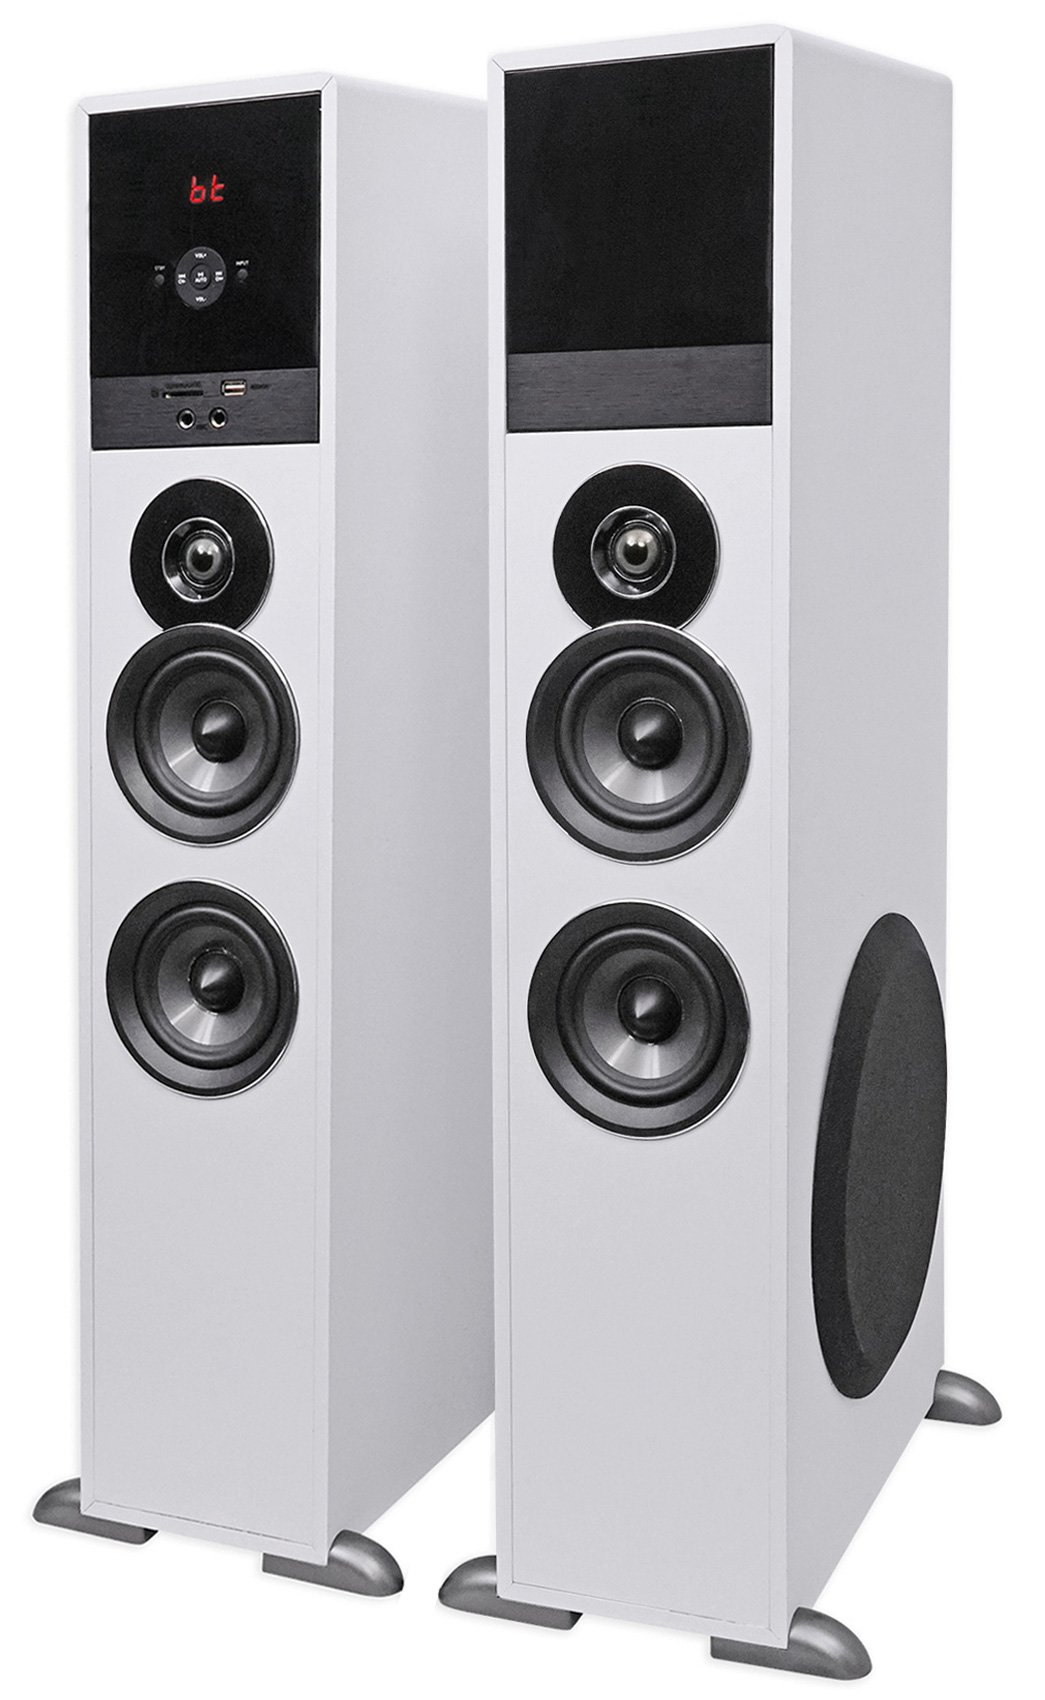 Tower Speaker Home Theater System+8'' Sub For Toshiba LED Television TV-White by Rockville (Image #2)